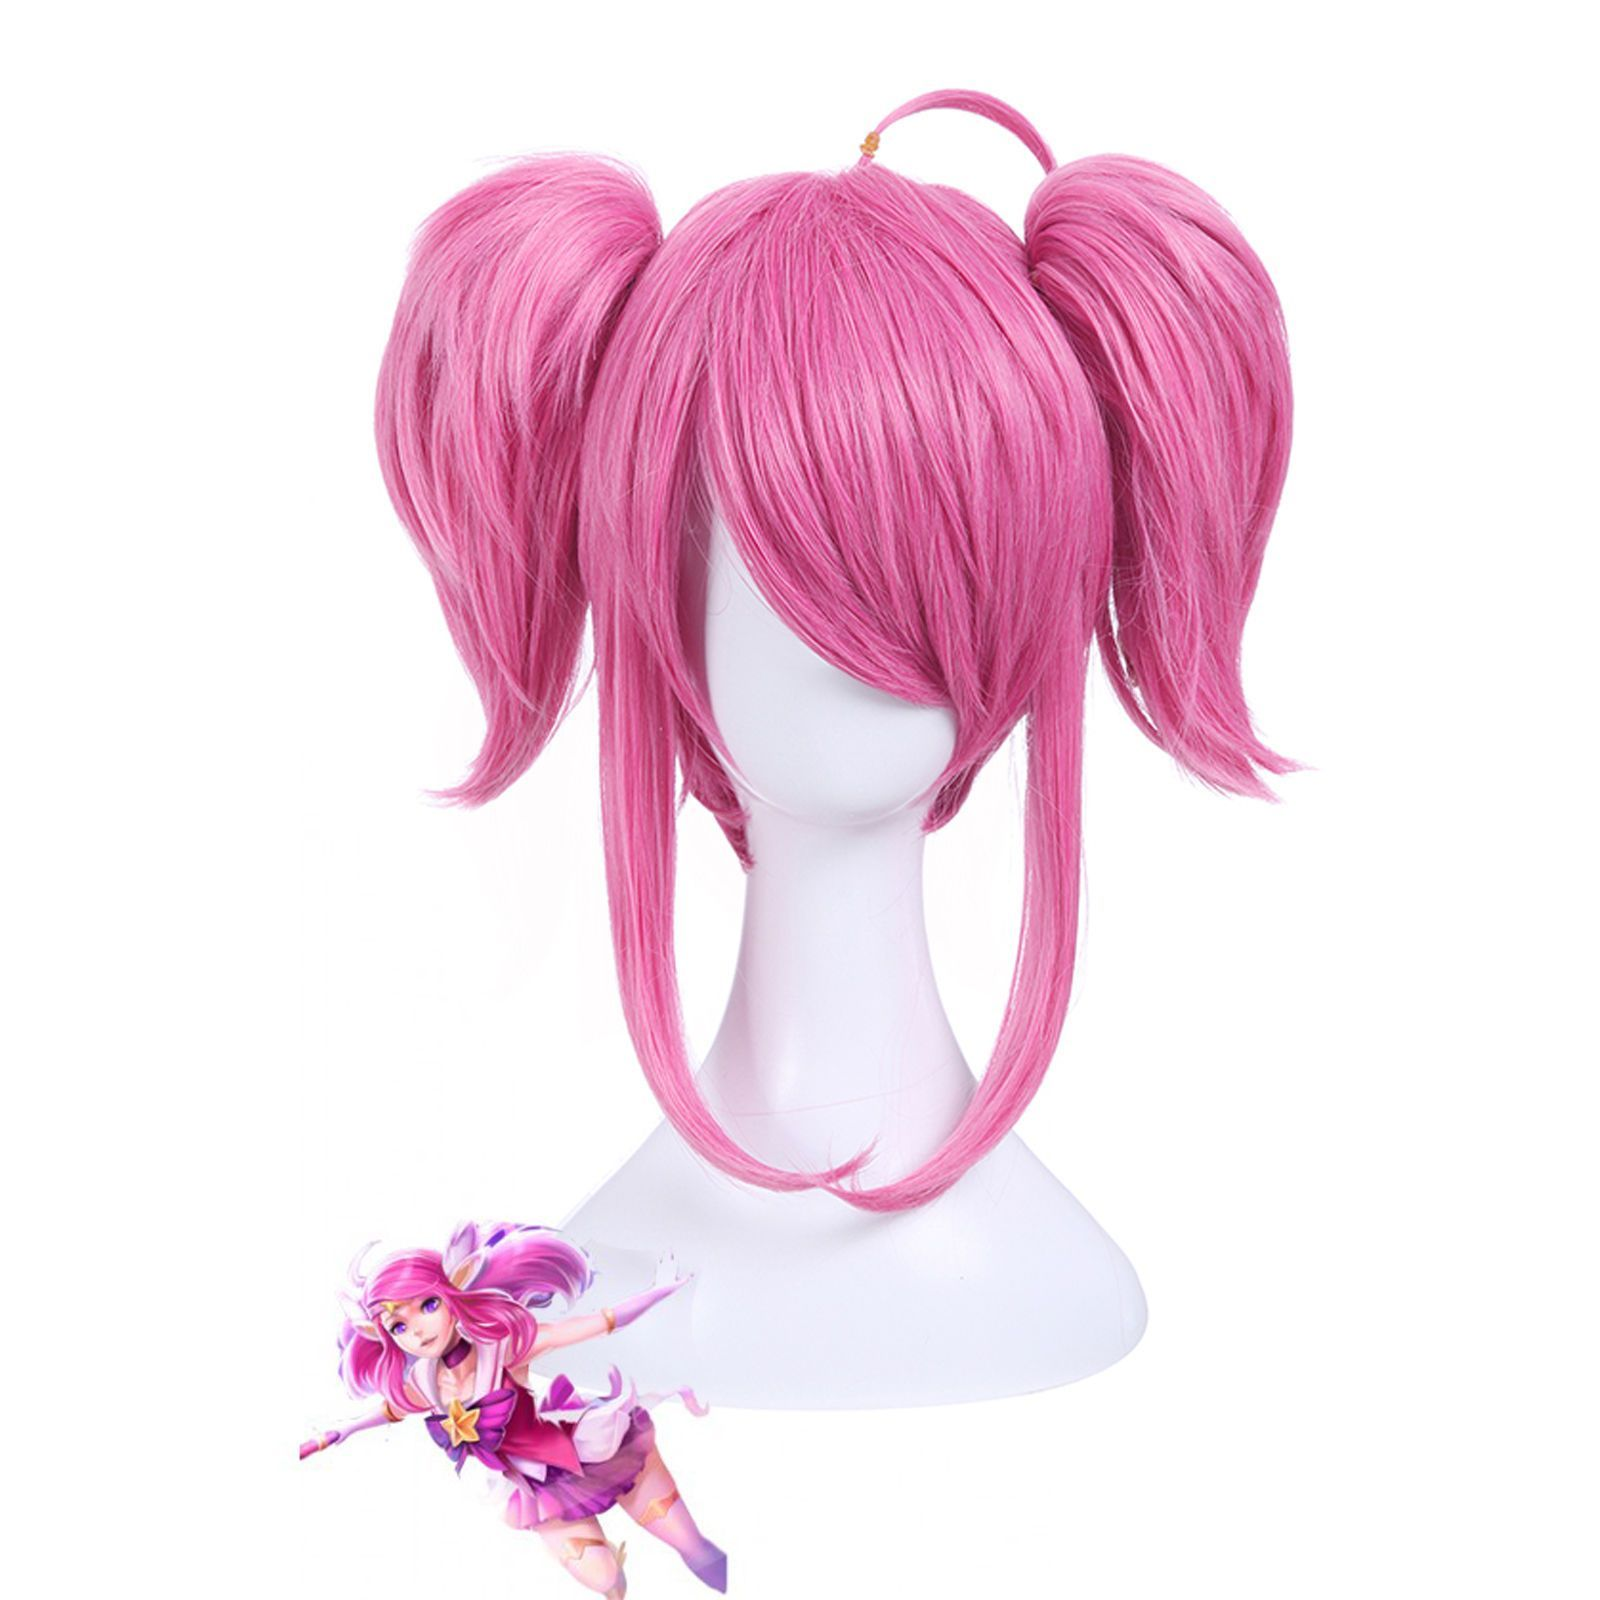 League Legends Star Guardian Lux Lol Anime Hair Cosplay Wig